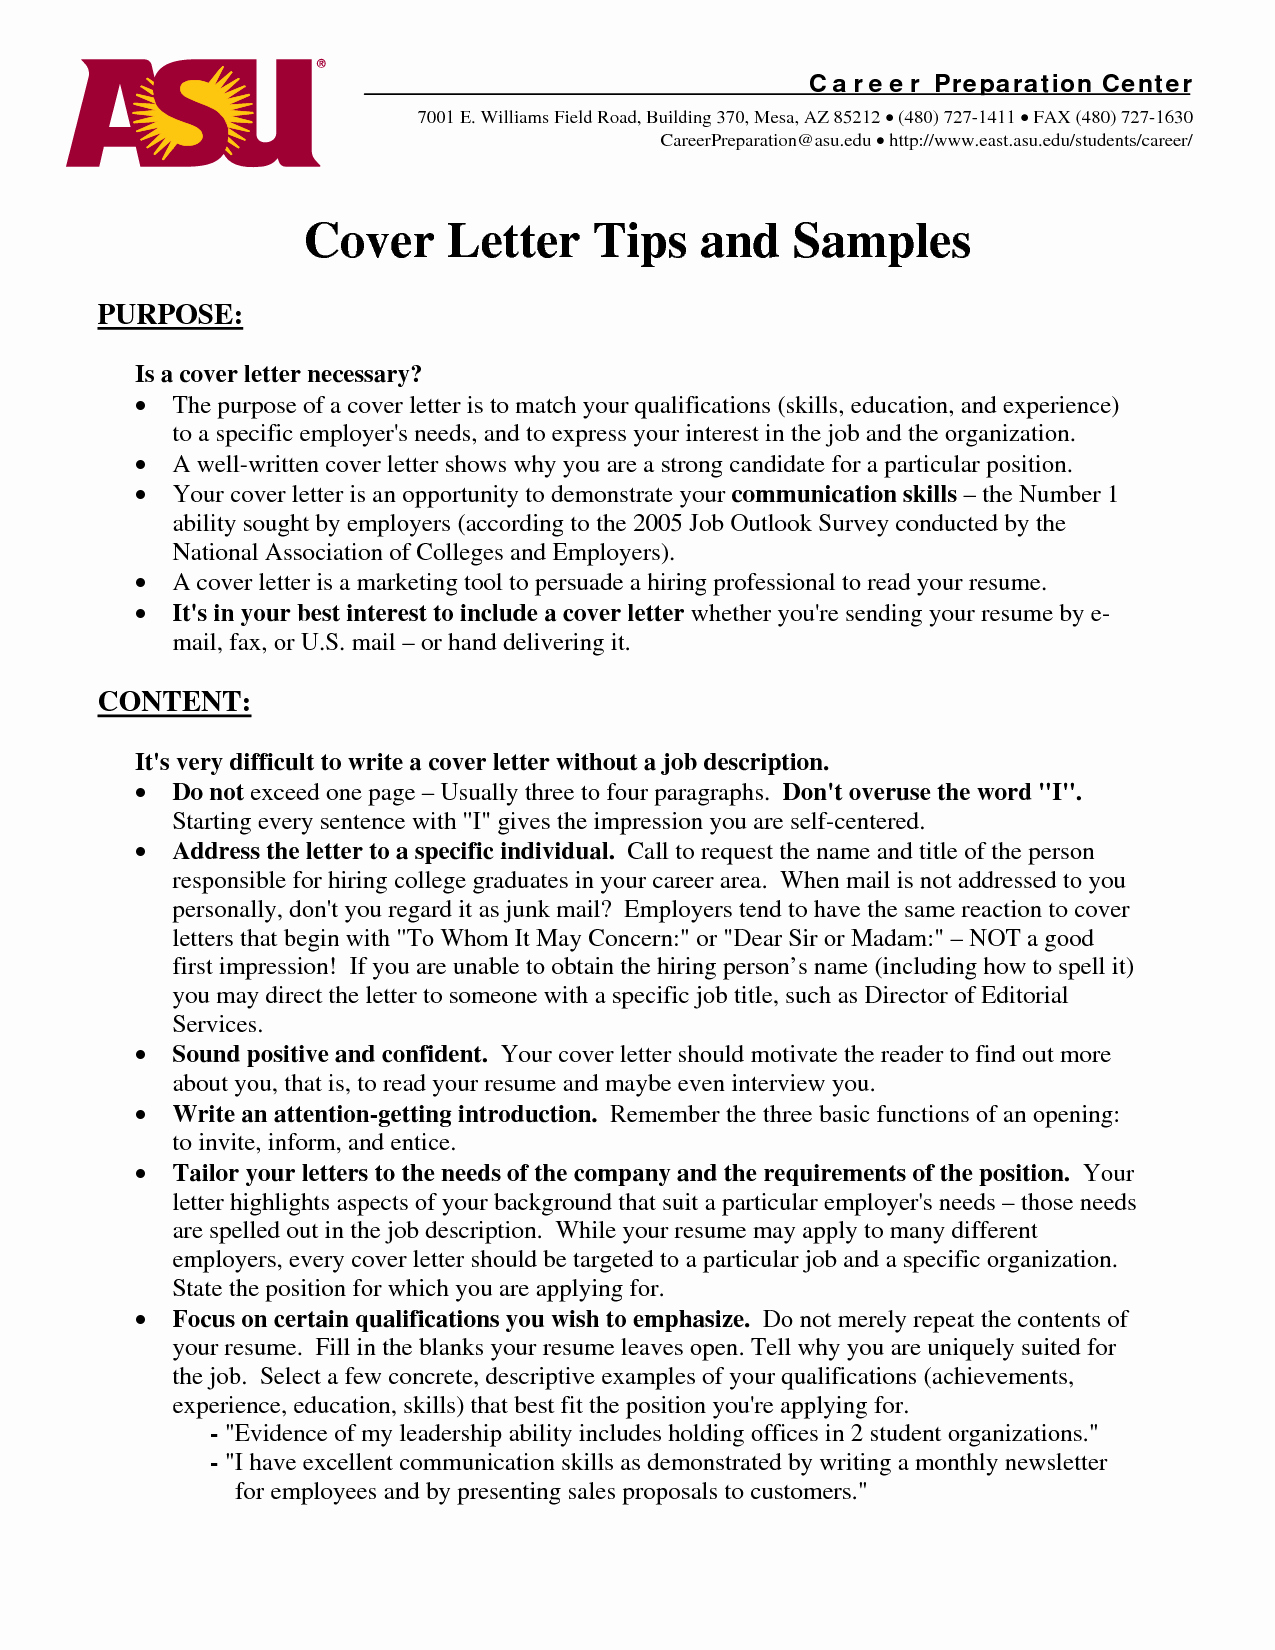 Google Drive Cover Letter Template Templates Data